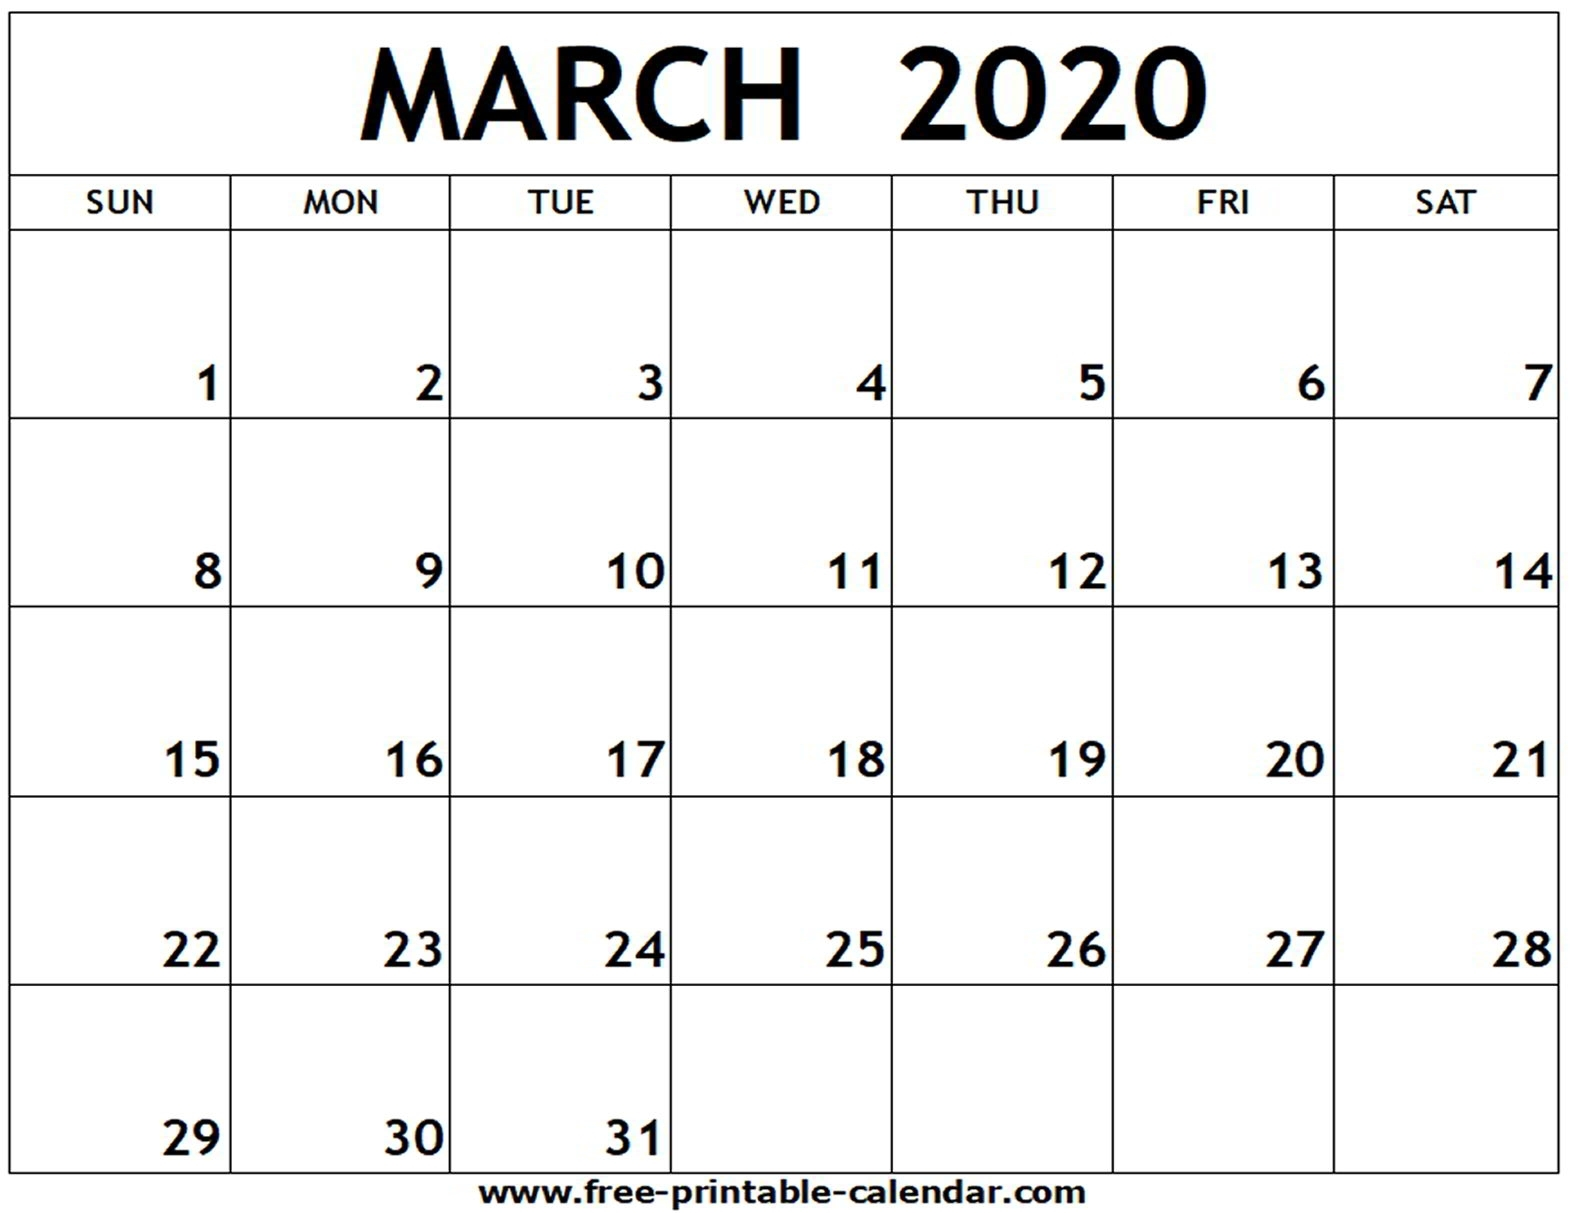 March 2020 Printable Calendar - Free-Printable-Calendar inside Blank Calander 2020 Fill In